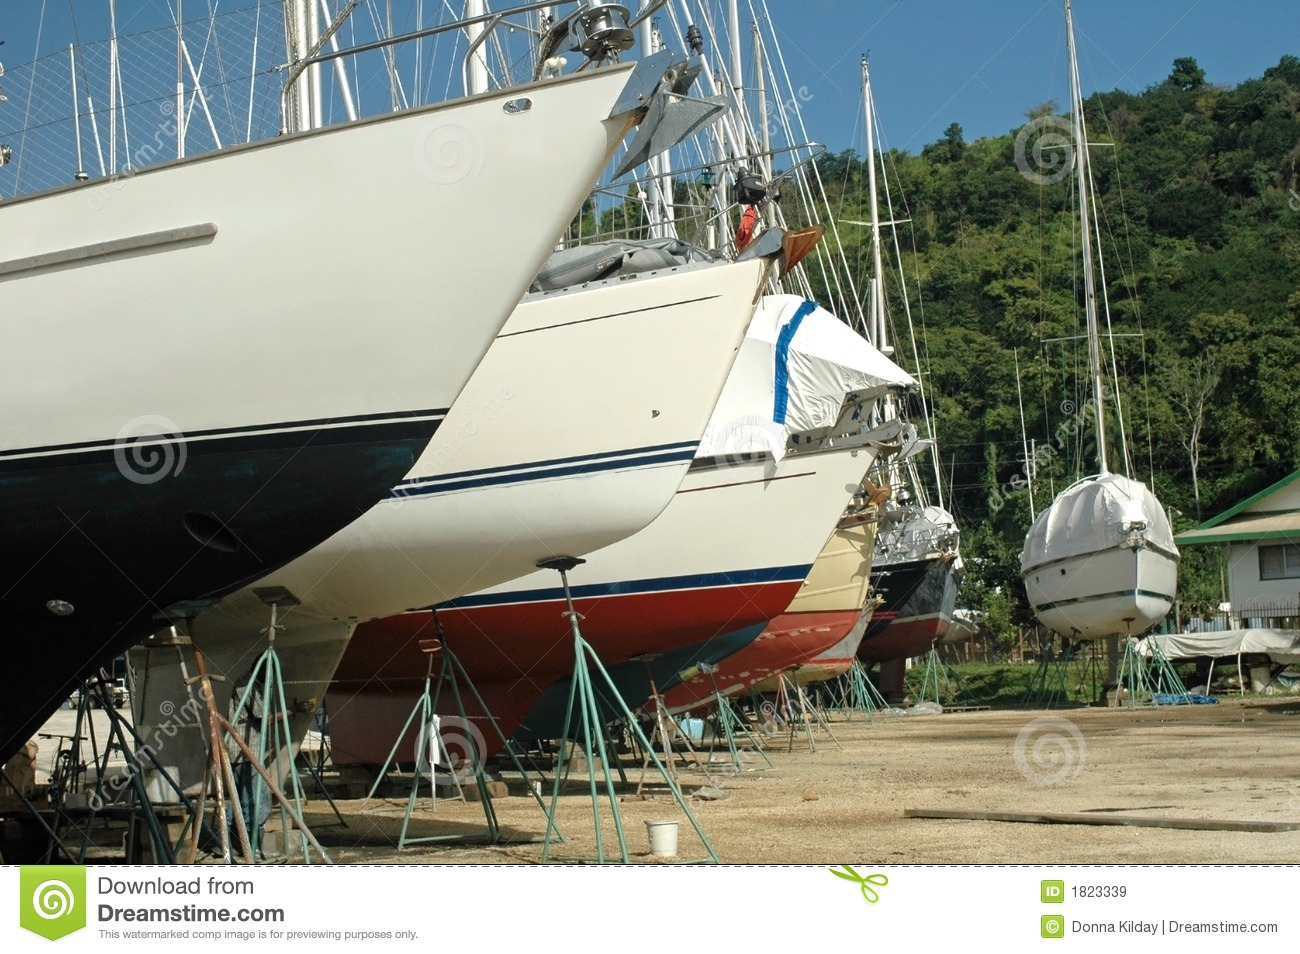 Boat Yard Caribbean Royalty Free Stock Images - Image: 1823339